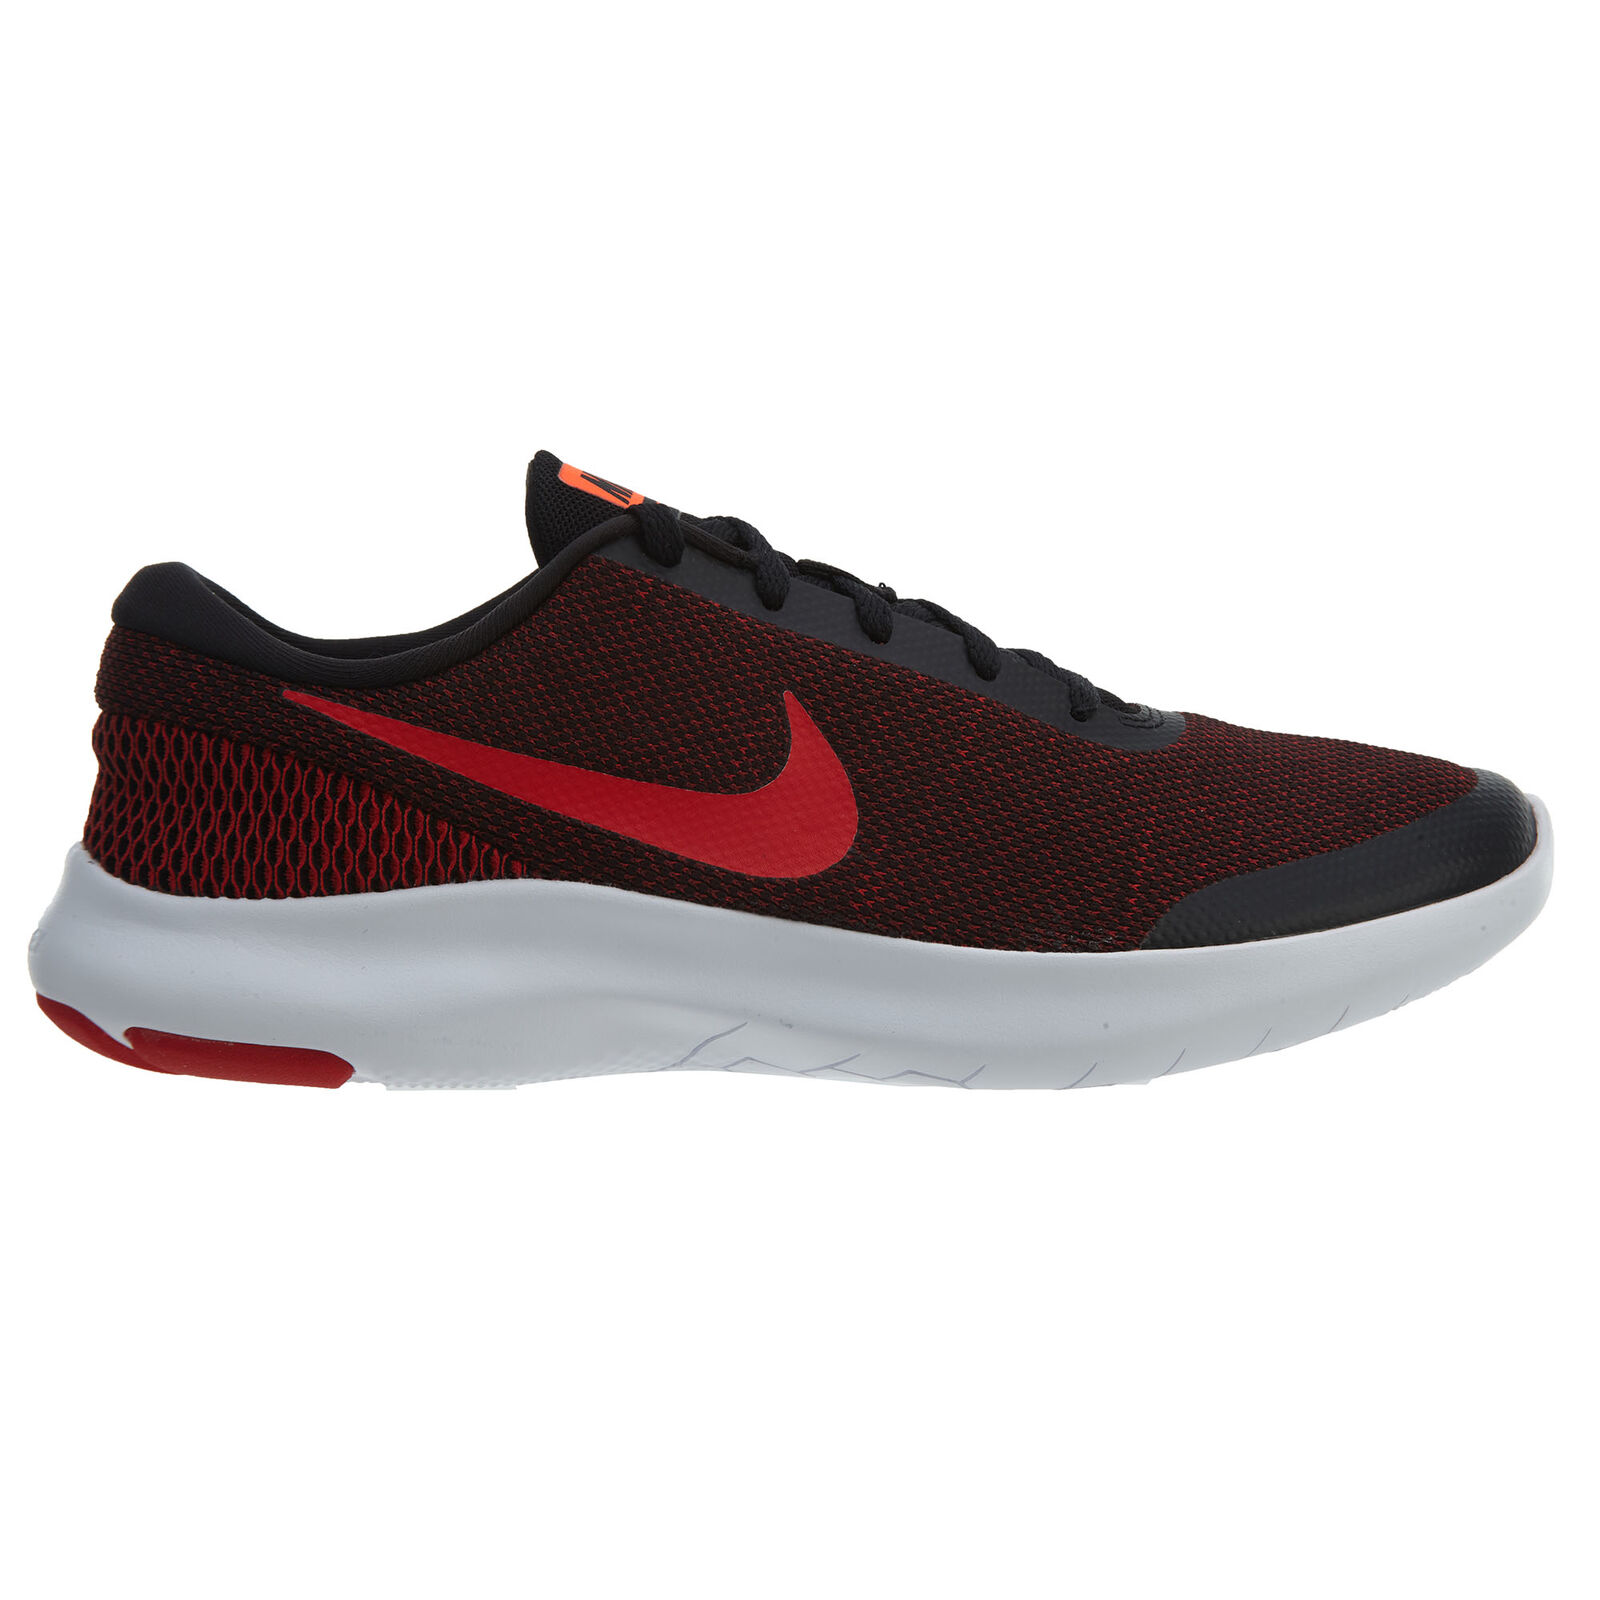 Nike Flex Experience RN 7 Mens 908985-006 Black Gym Red Running Shoes Size 10